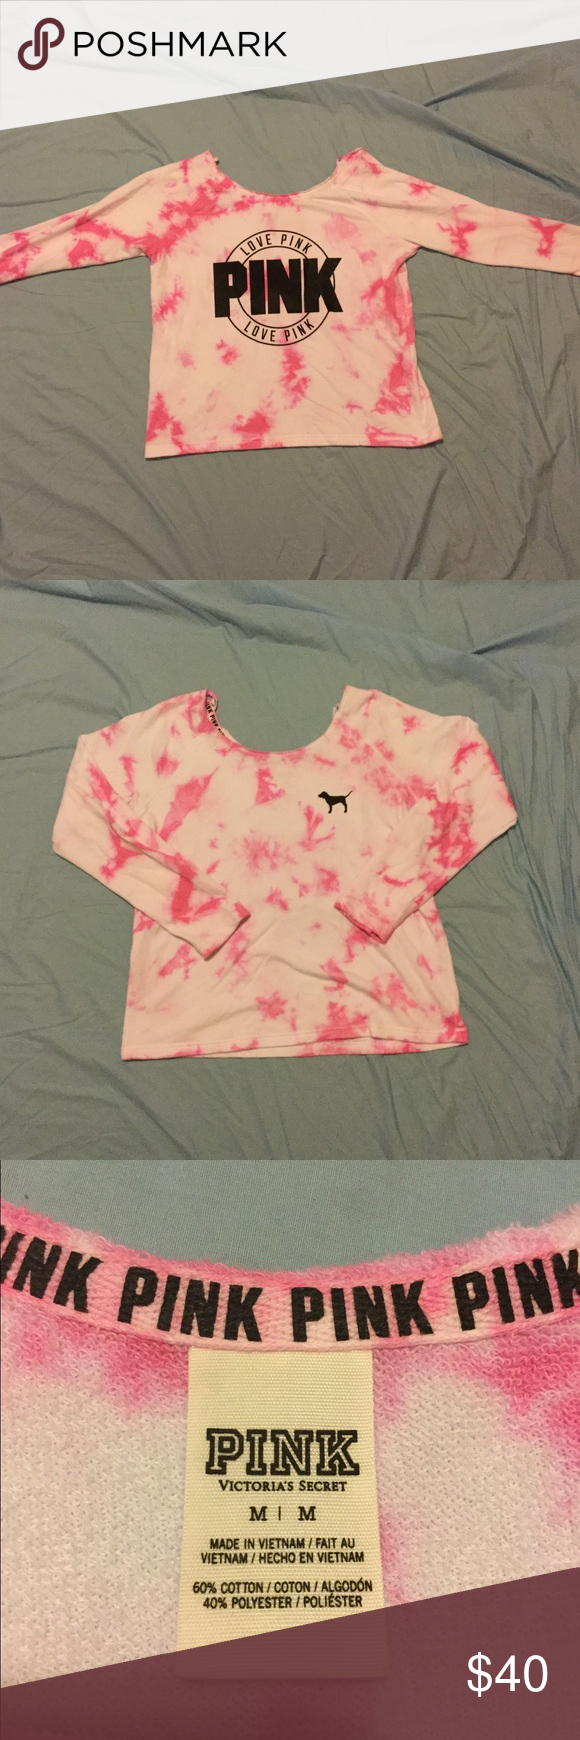 Tie dye slouchy crew from PINK! Size medium. Pink and white oversized slouchy crew. Comfy and cozy. Only worn once. Excellent condition! Offers are welcome. NO TRADES. PINK Victoria's Secret Tops